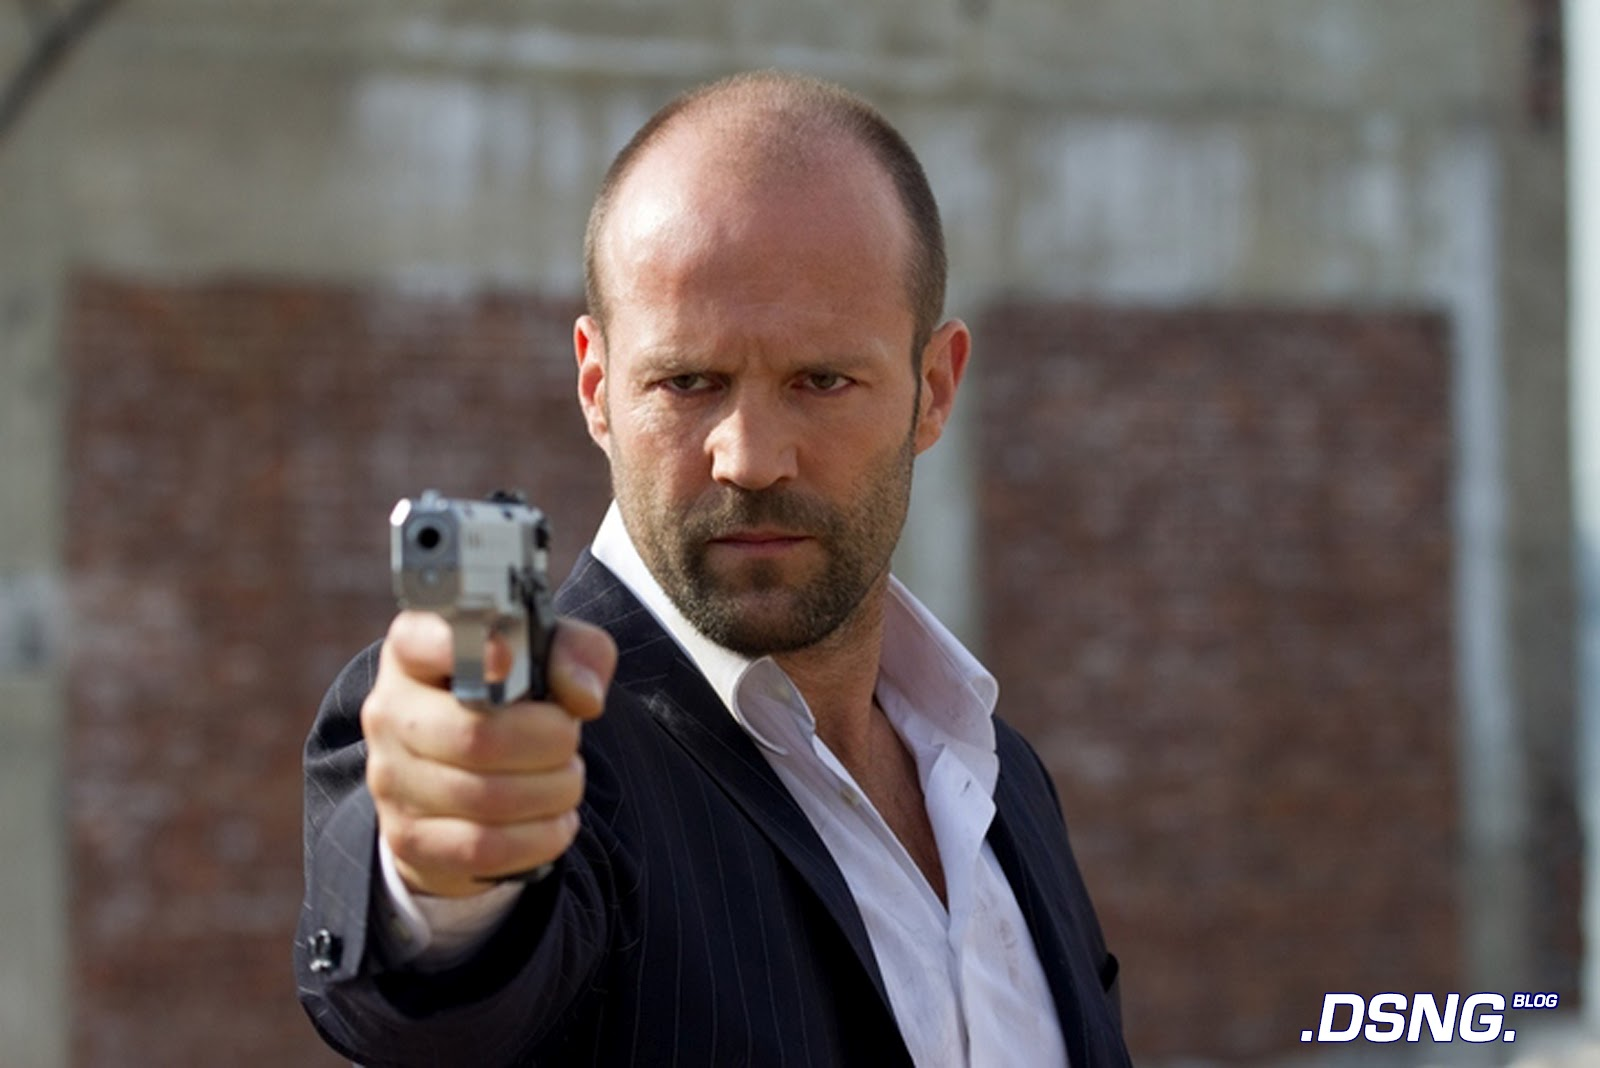 http://4.bp.blogspot.com/-yLMmTohybqI/T58TX2sIWKI/AAAAAAAAFRU/MfzF6Tr-fbU/s1600/safe+2012+movie+jason+statham+best+action+movie+of+the+year+bulletproof+vest+police+swat+squad+team+actor+2+handgun+desert+eagle.jpg